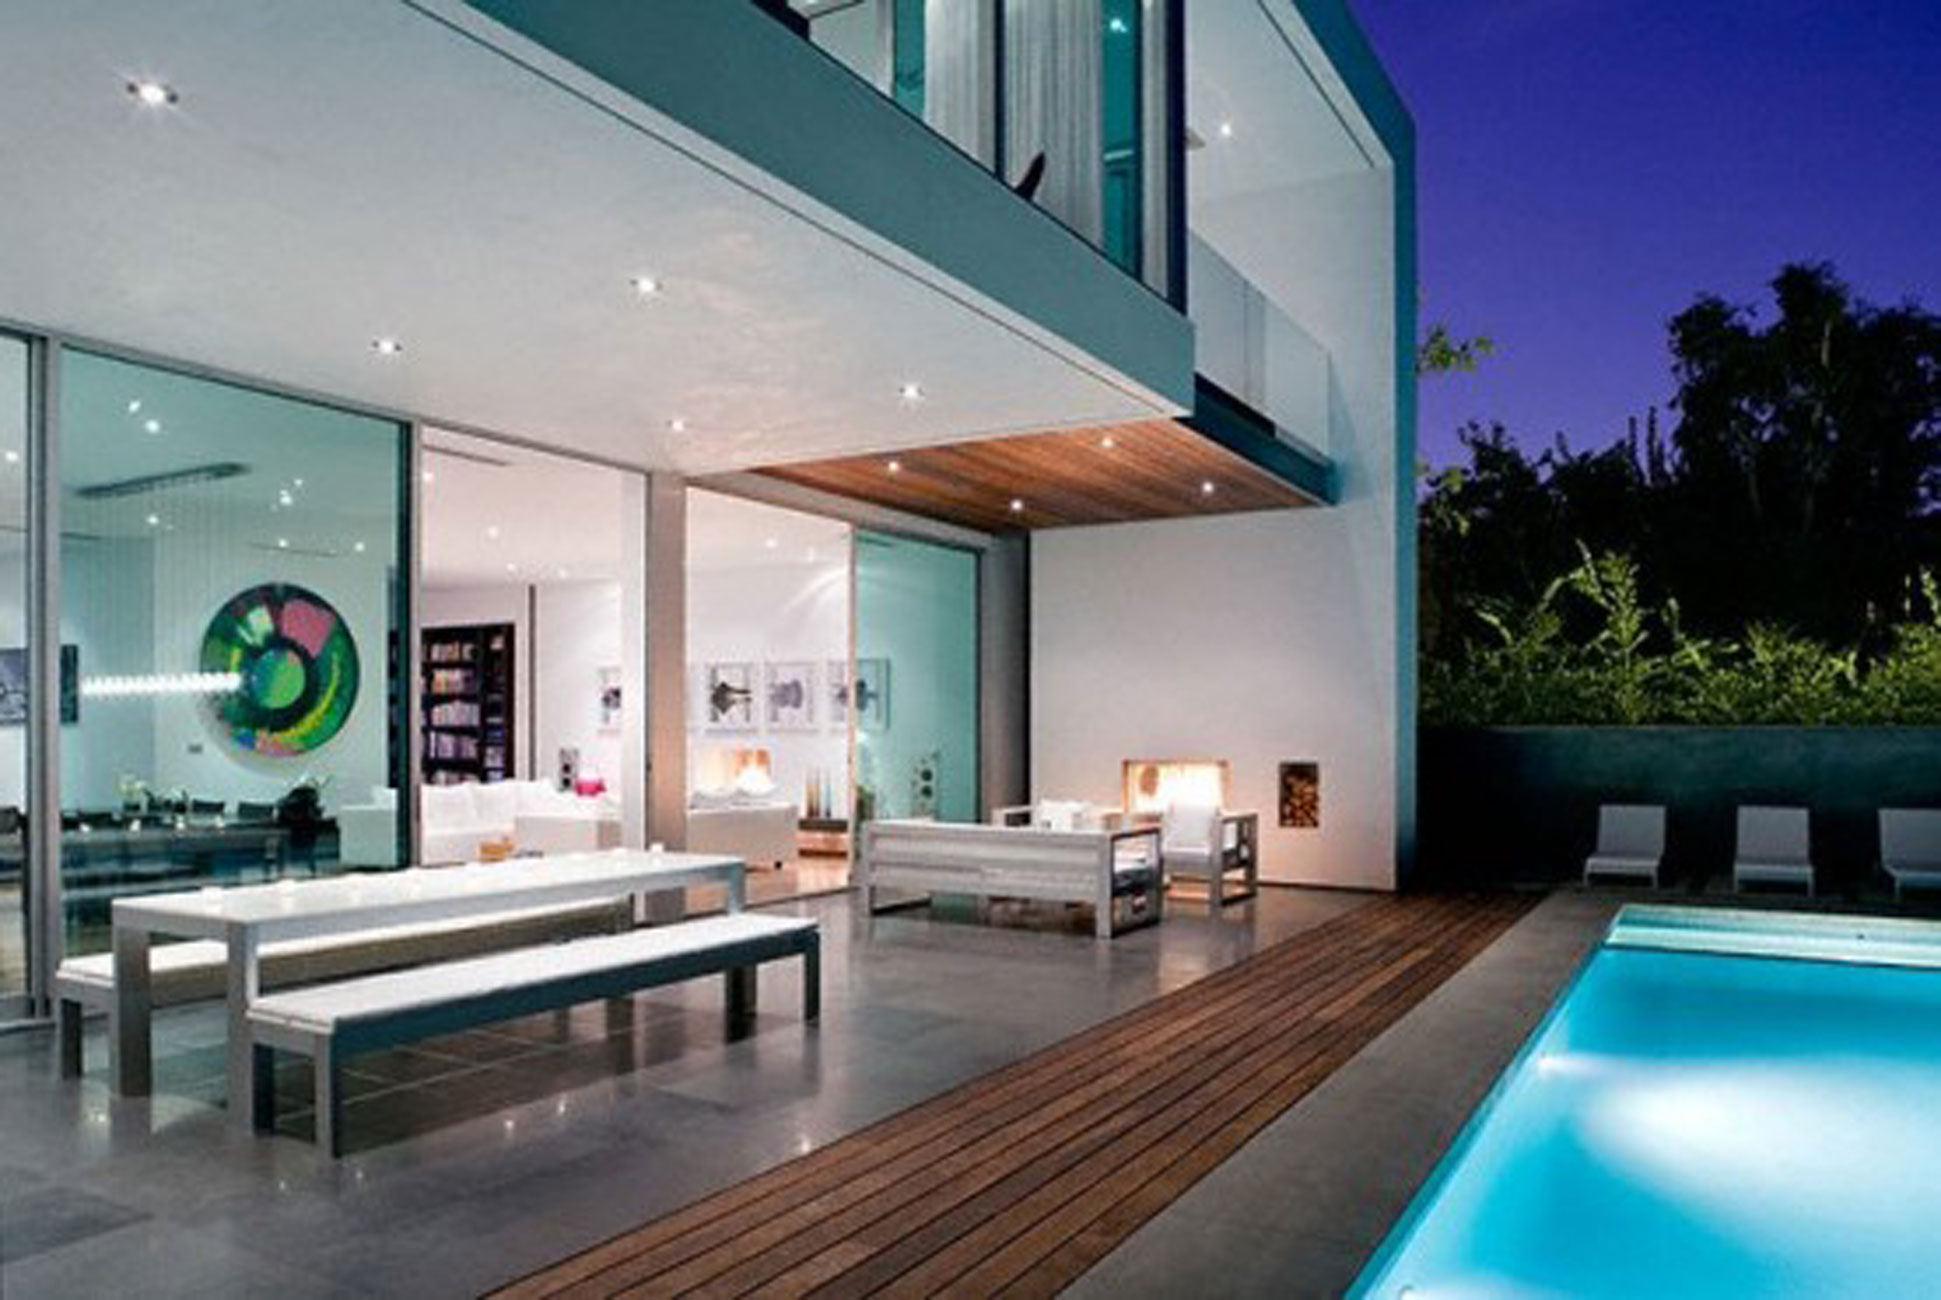 Contemporary House Interiors. Modern House Design With Comfortable Interior  Ideas Pool